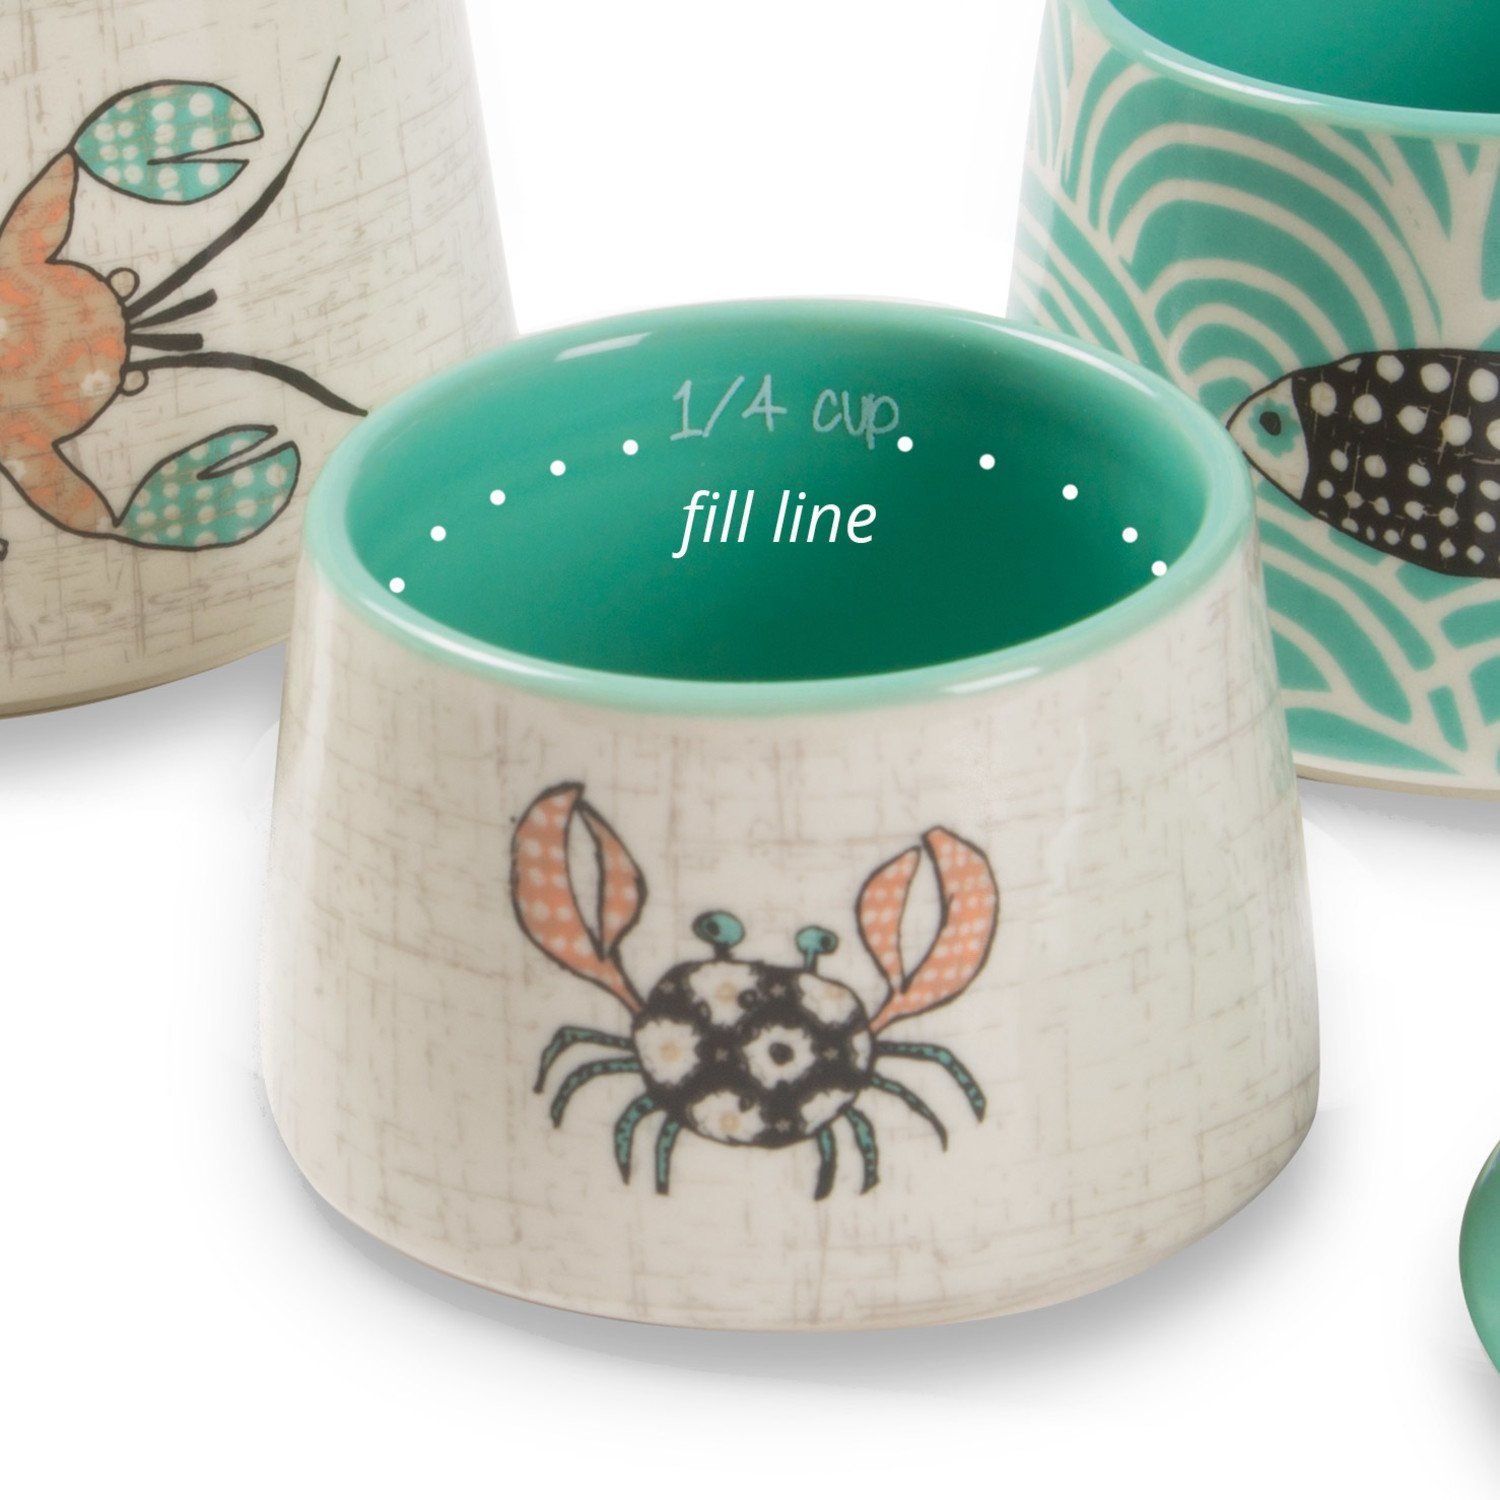 Teal /& Beige Pavilion Gift Company 74306 Pavilion Fish Lobster and Whale Stack-able Light House Themed Ceramic Measuring Cup Set Beach Themed Crab